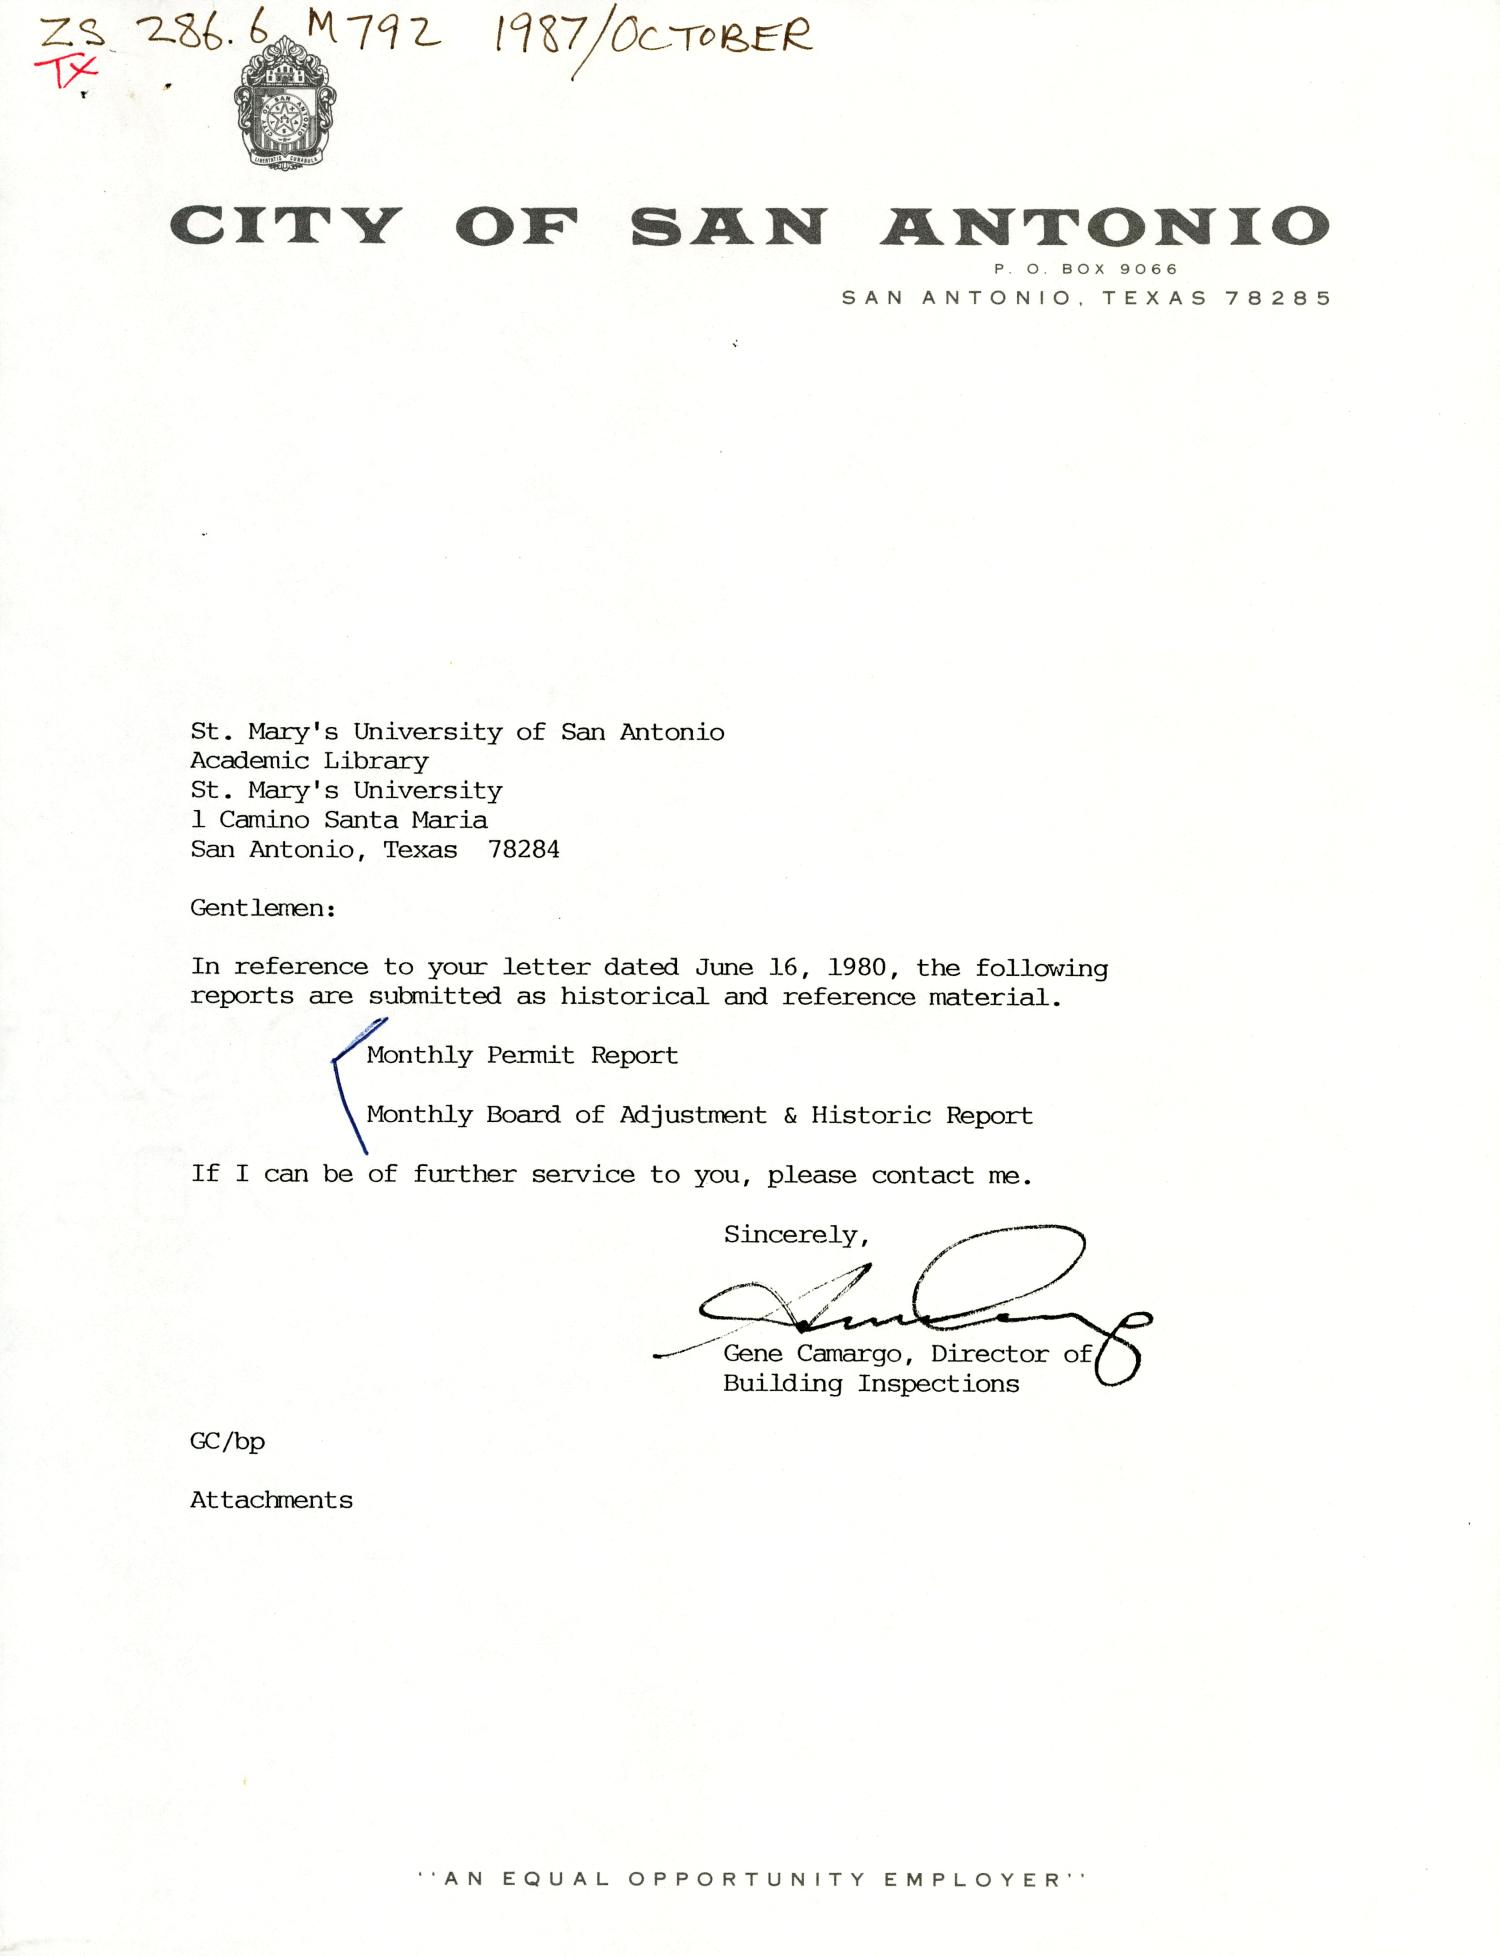 City of San Antonio Monthly Permit Report and Monthly Board of Adjustment & Historic Report: October 1987                                                                                                      Letter